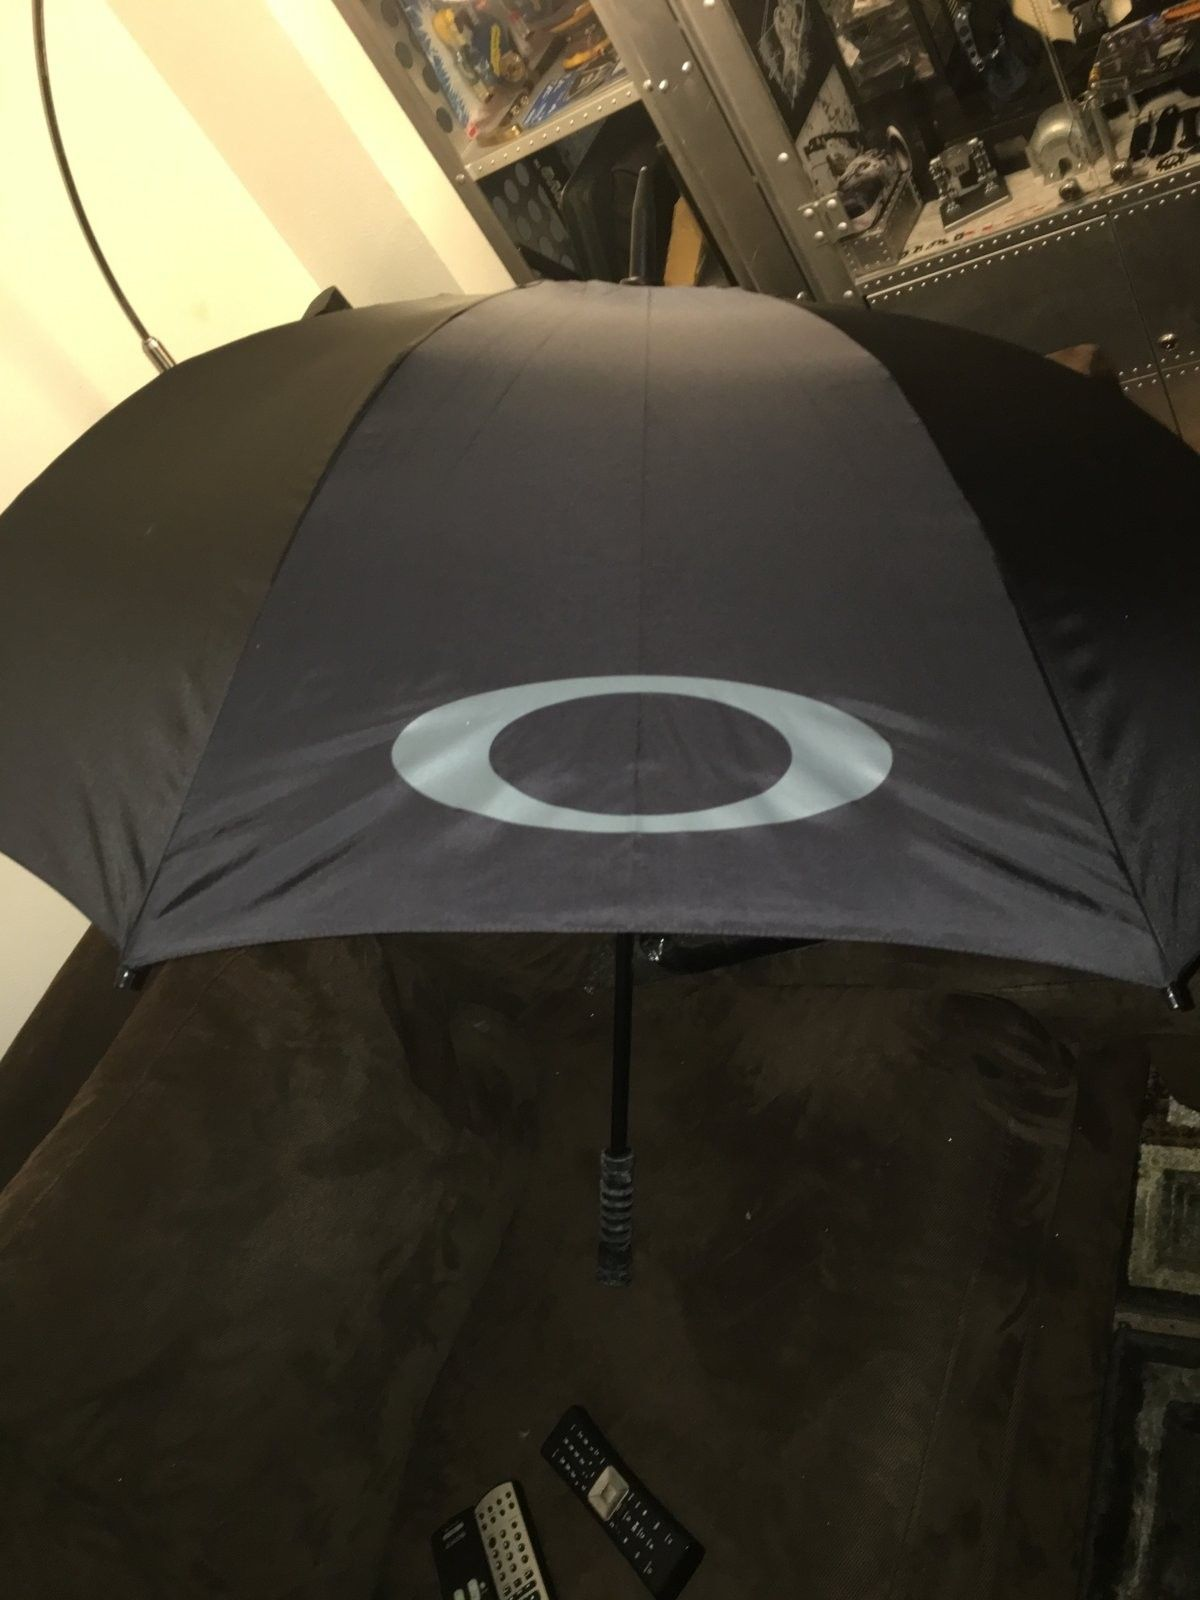 Oakley's Umbrella's ? - image.jpeg